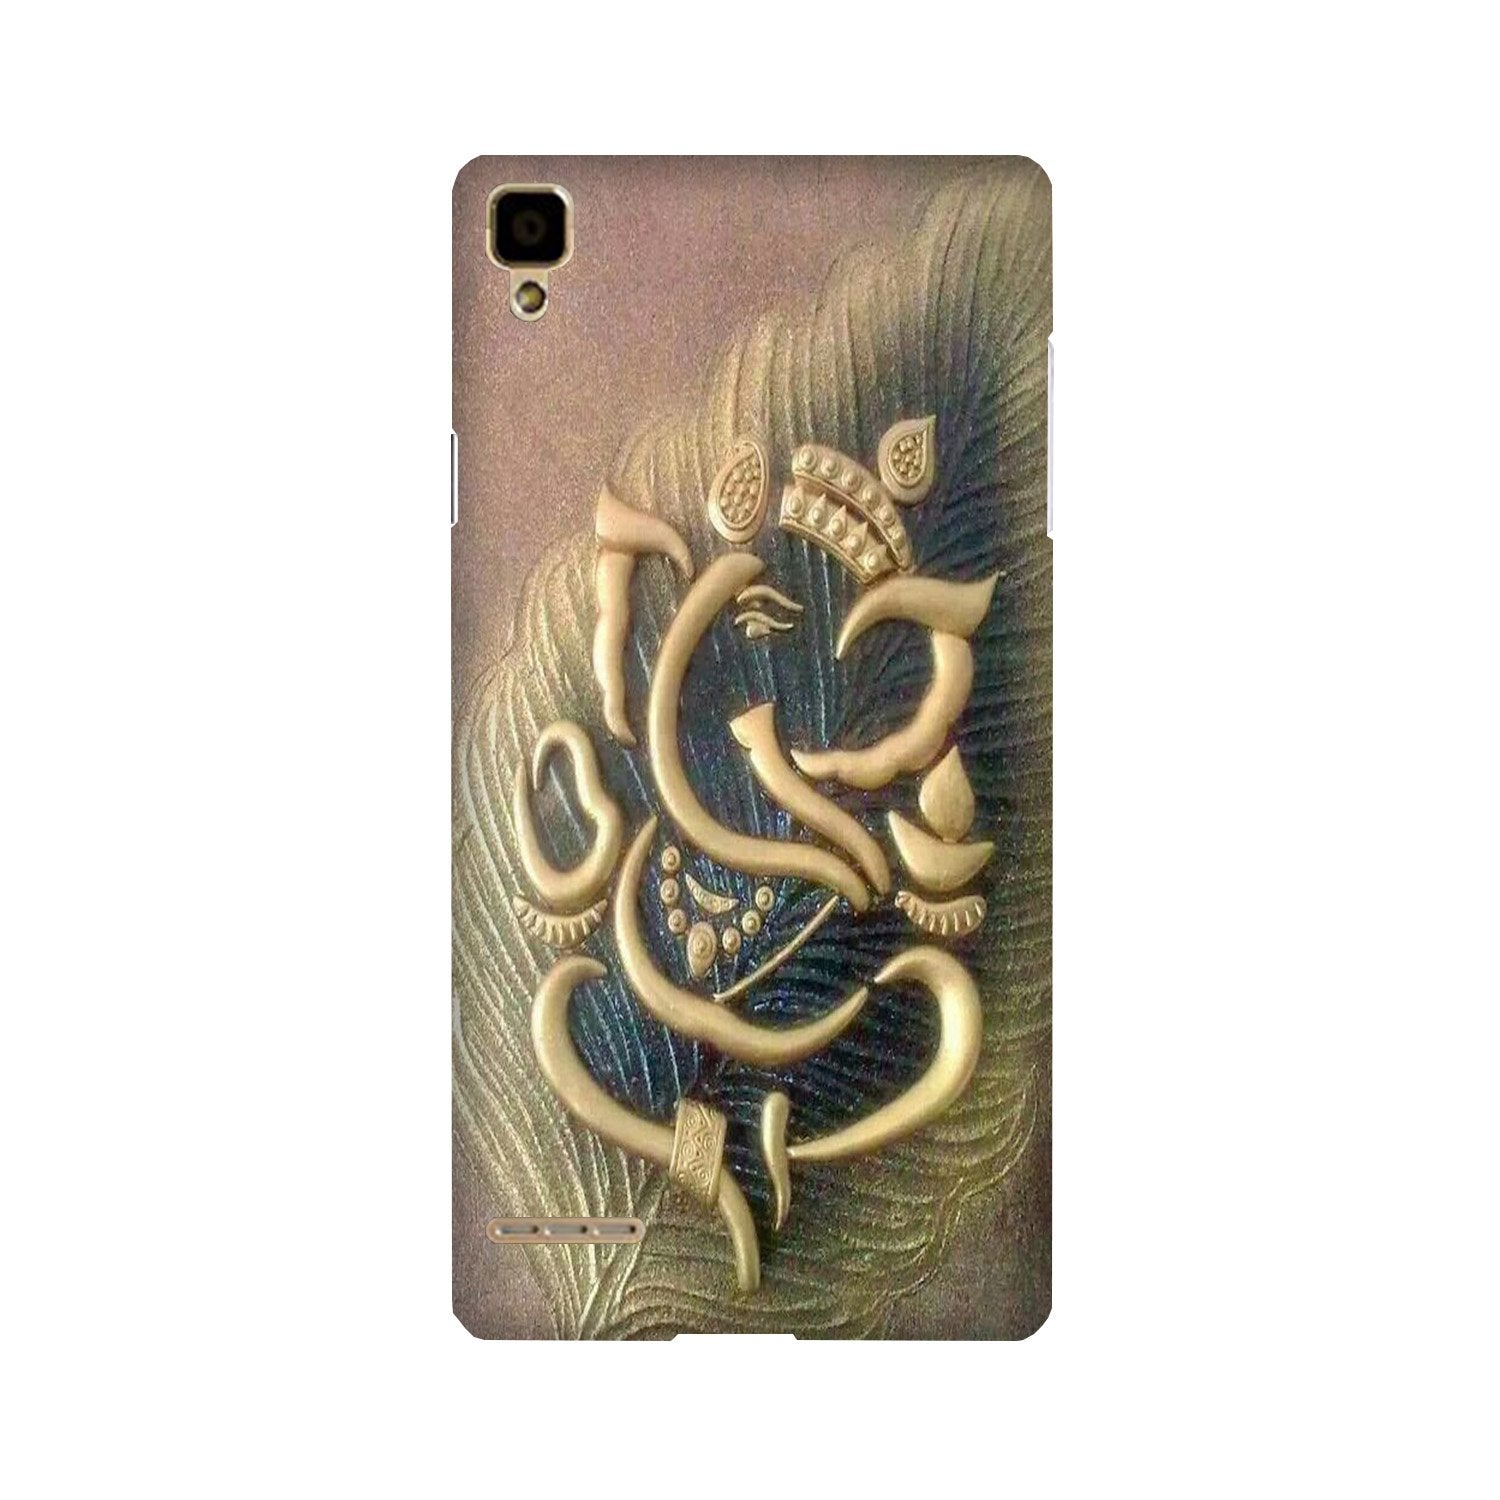 Lord Ganesha Case for Oppo F1